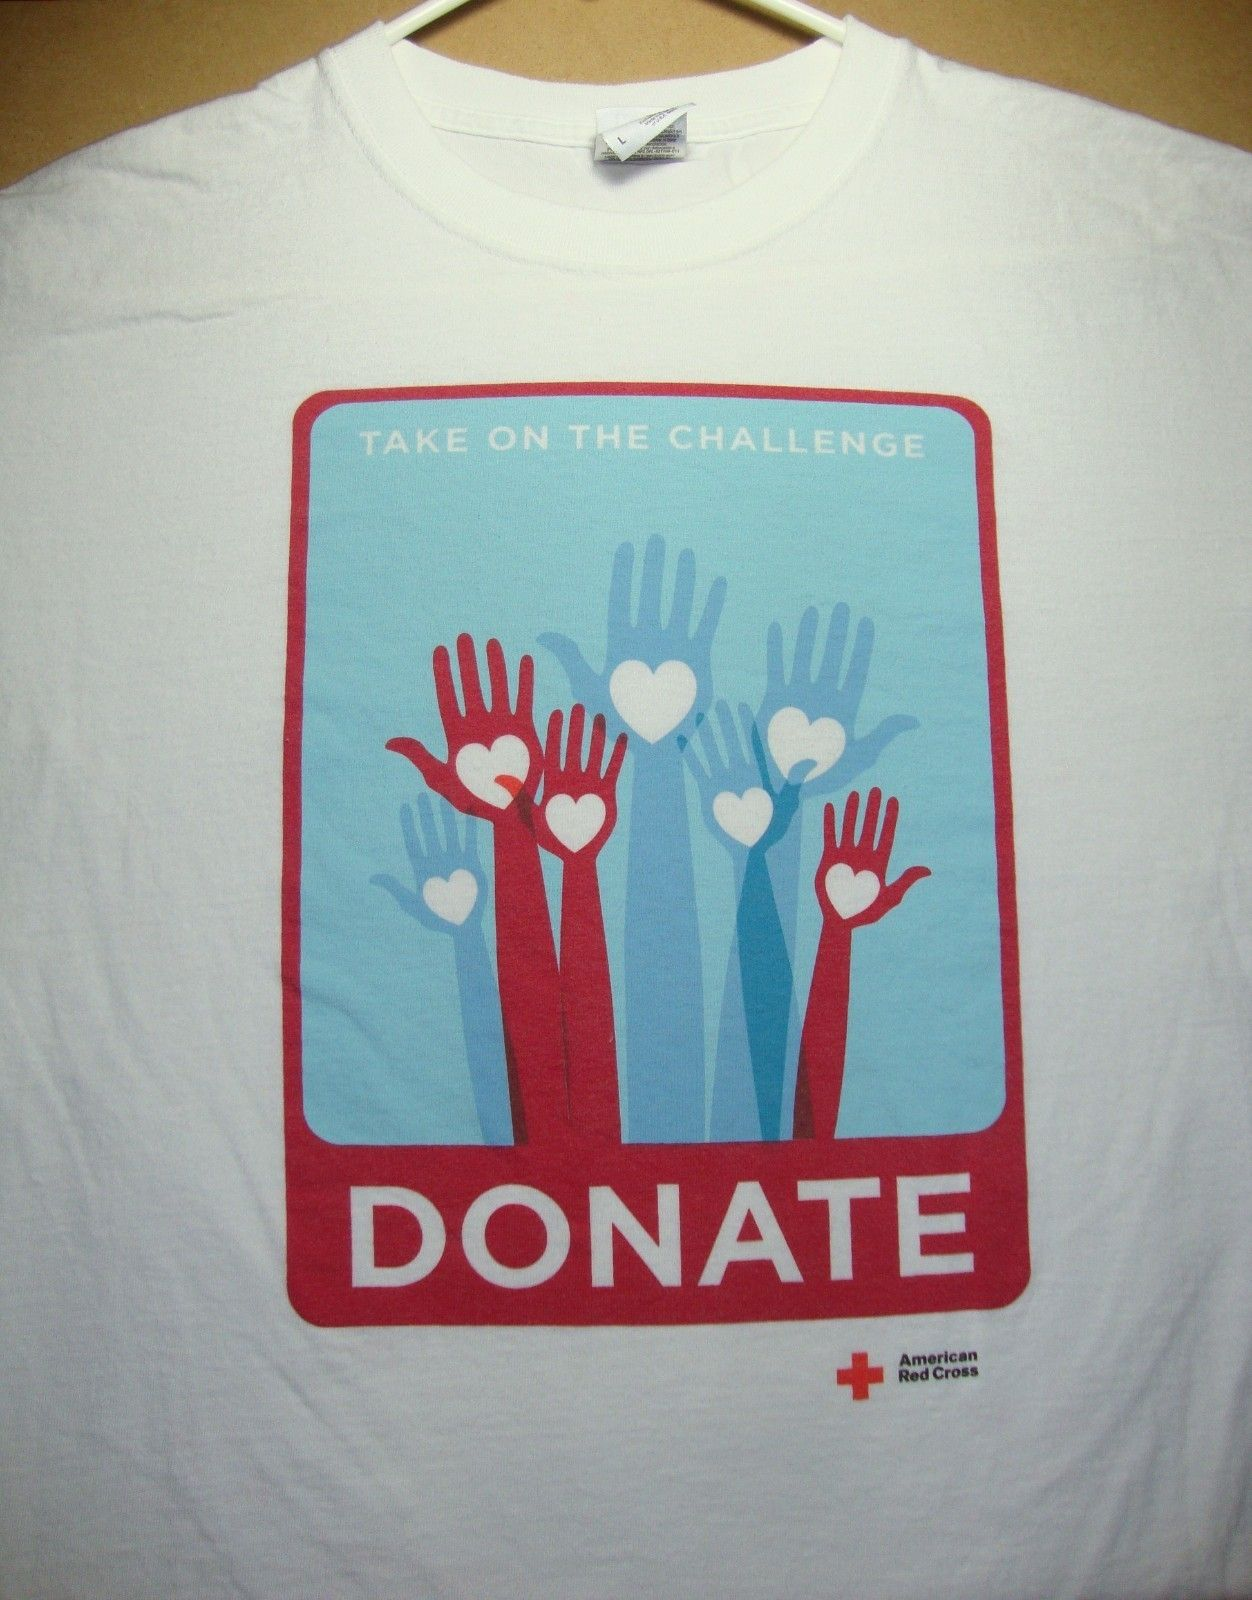 american red cross donate t shirt adult size large blood